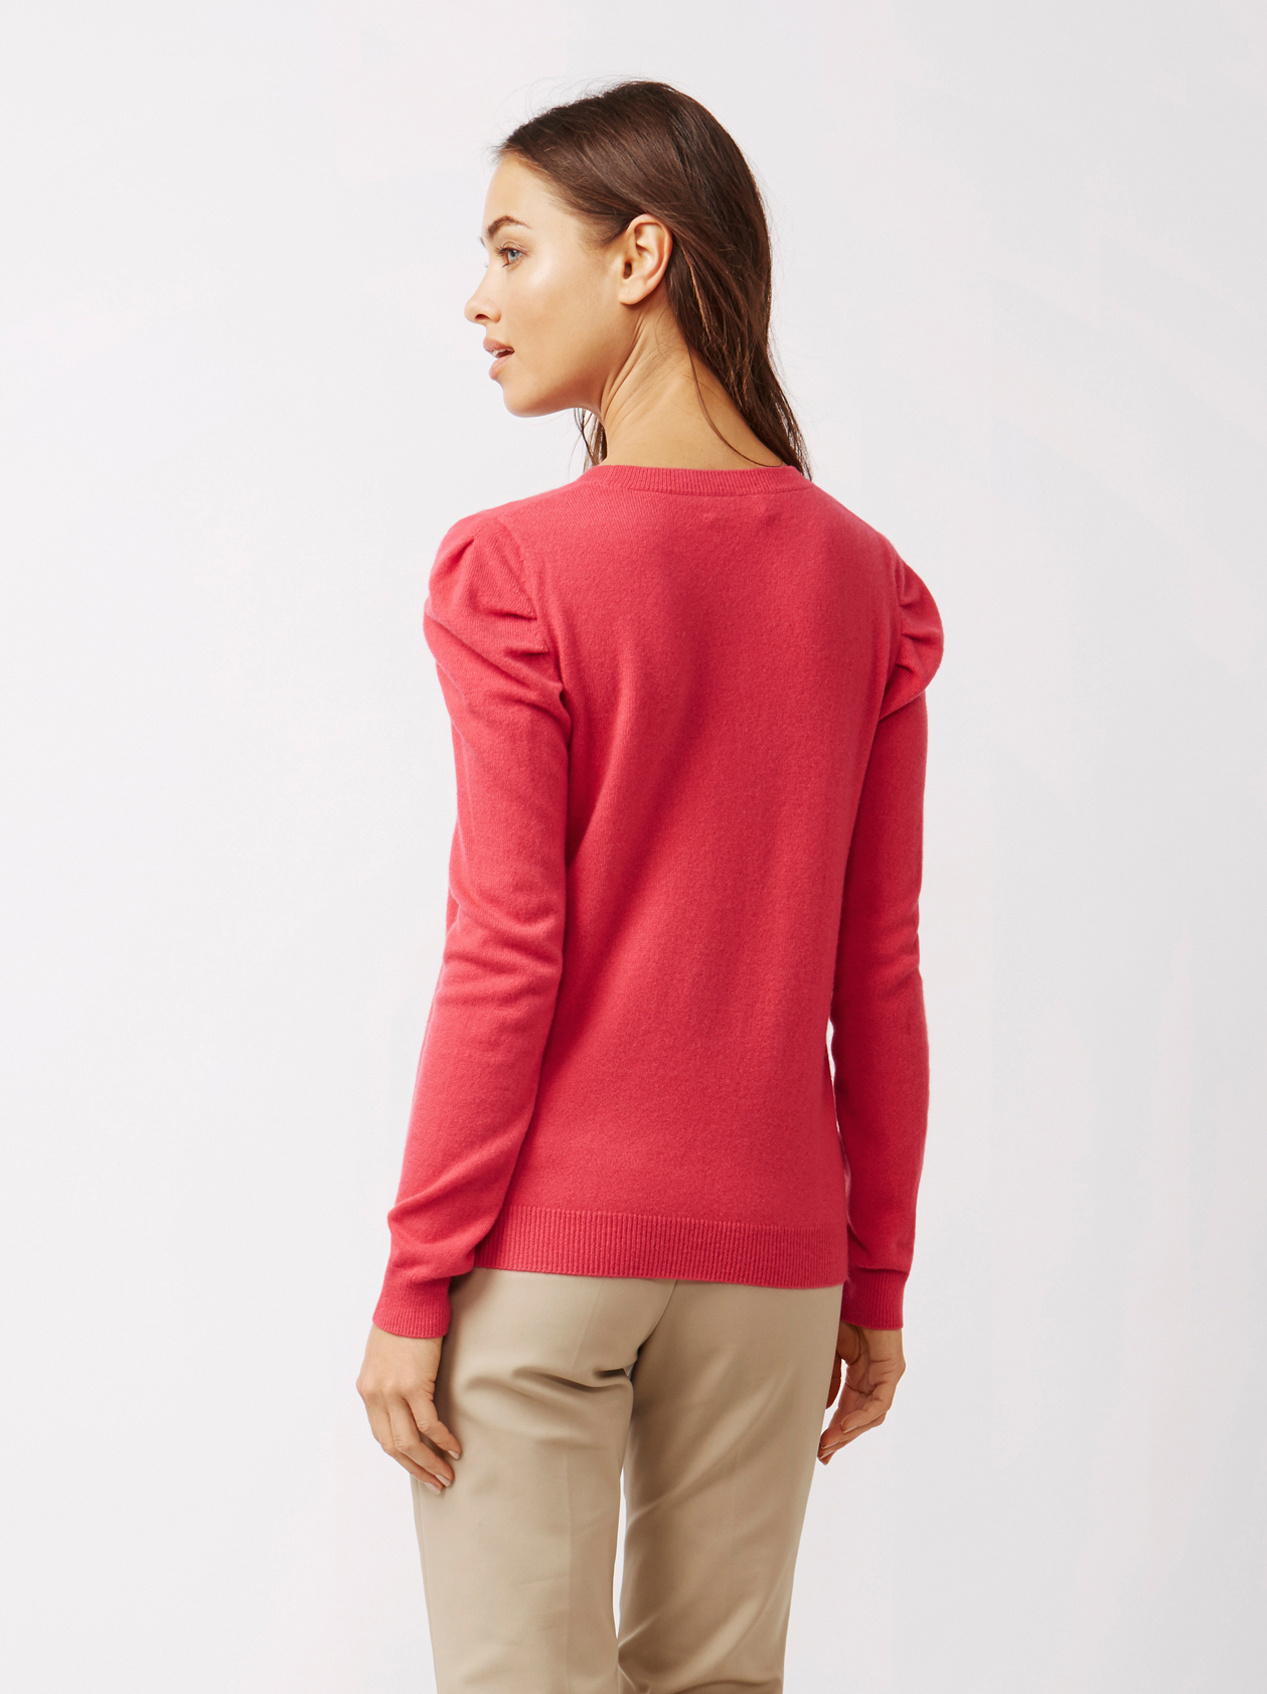 Soft Goat Women's Puff Shoulder Sweater Very Berry